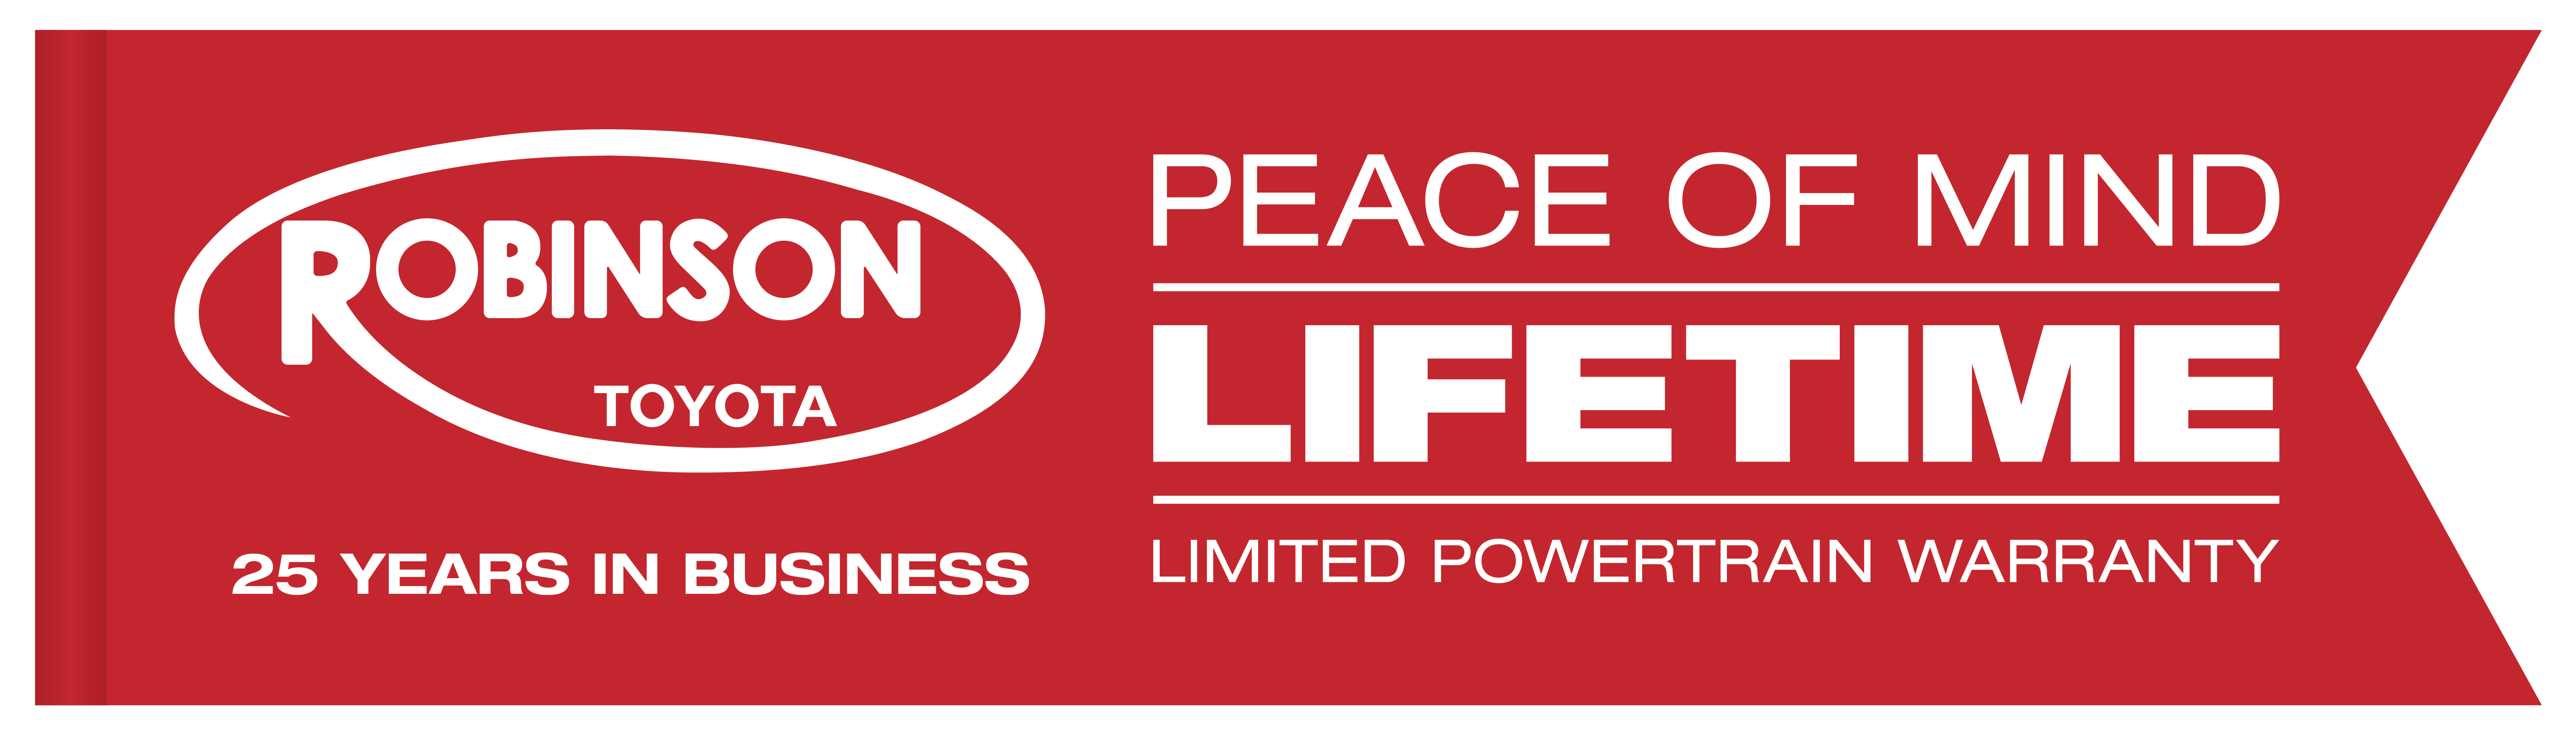 robinson toyota - peace of mind - lifetime warranty